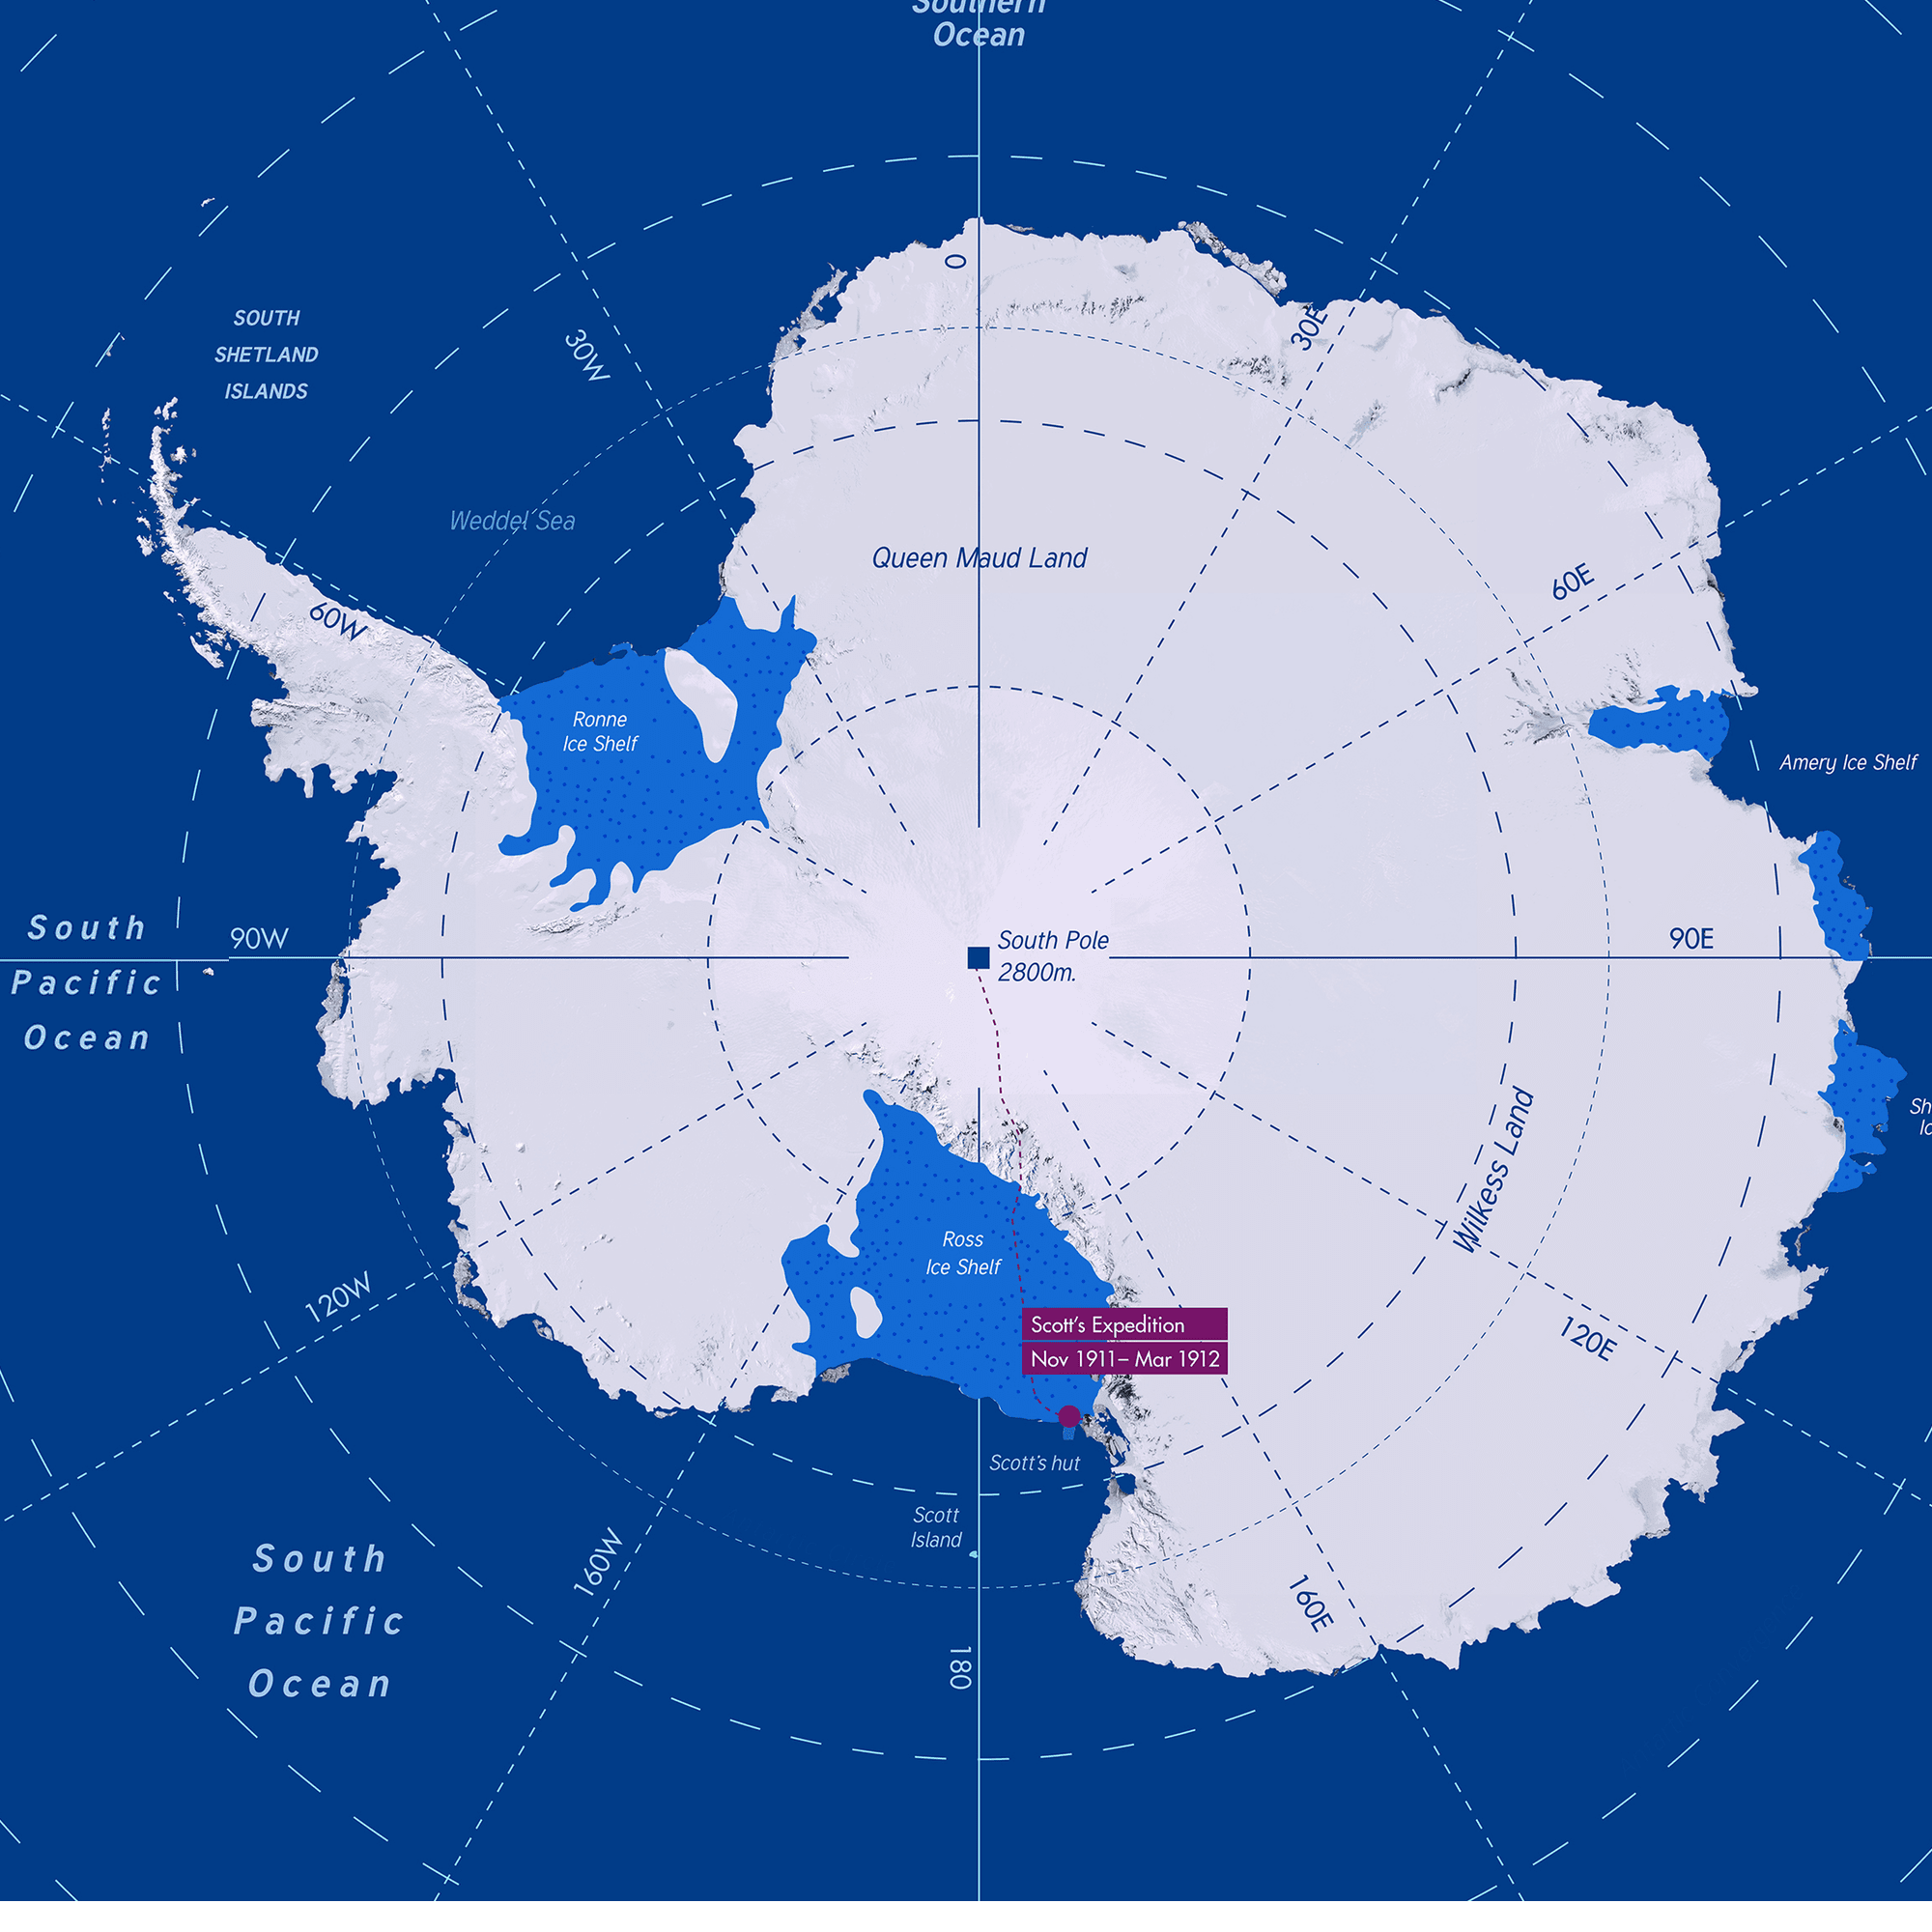 South Pole World Map.South Pole Energy Challenge Shell Global